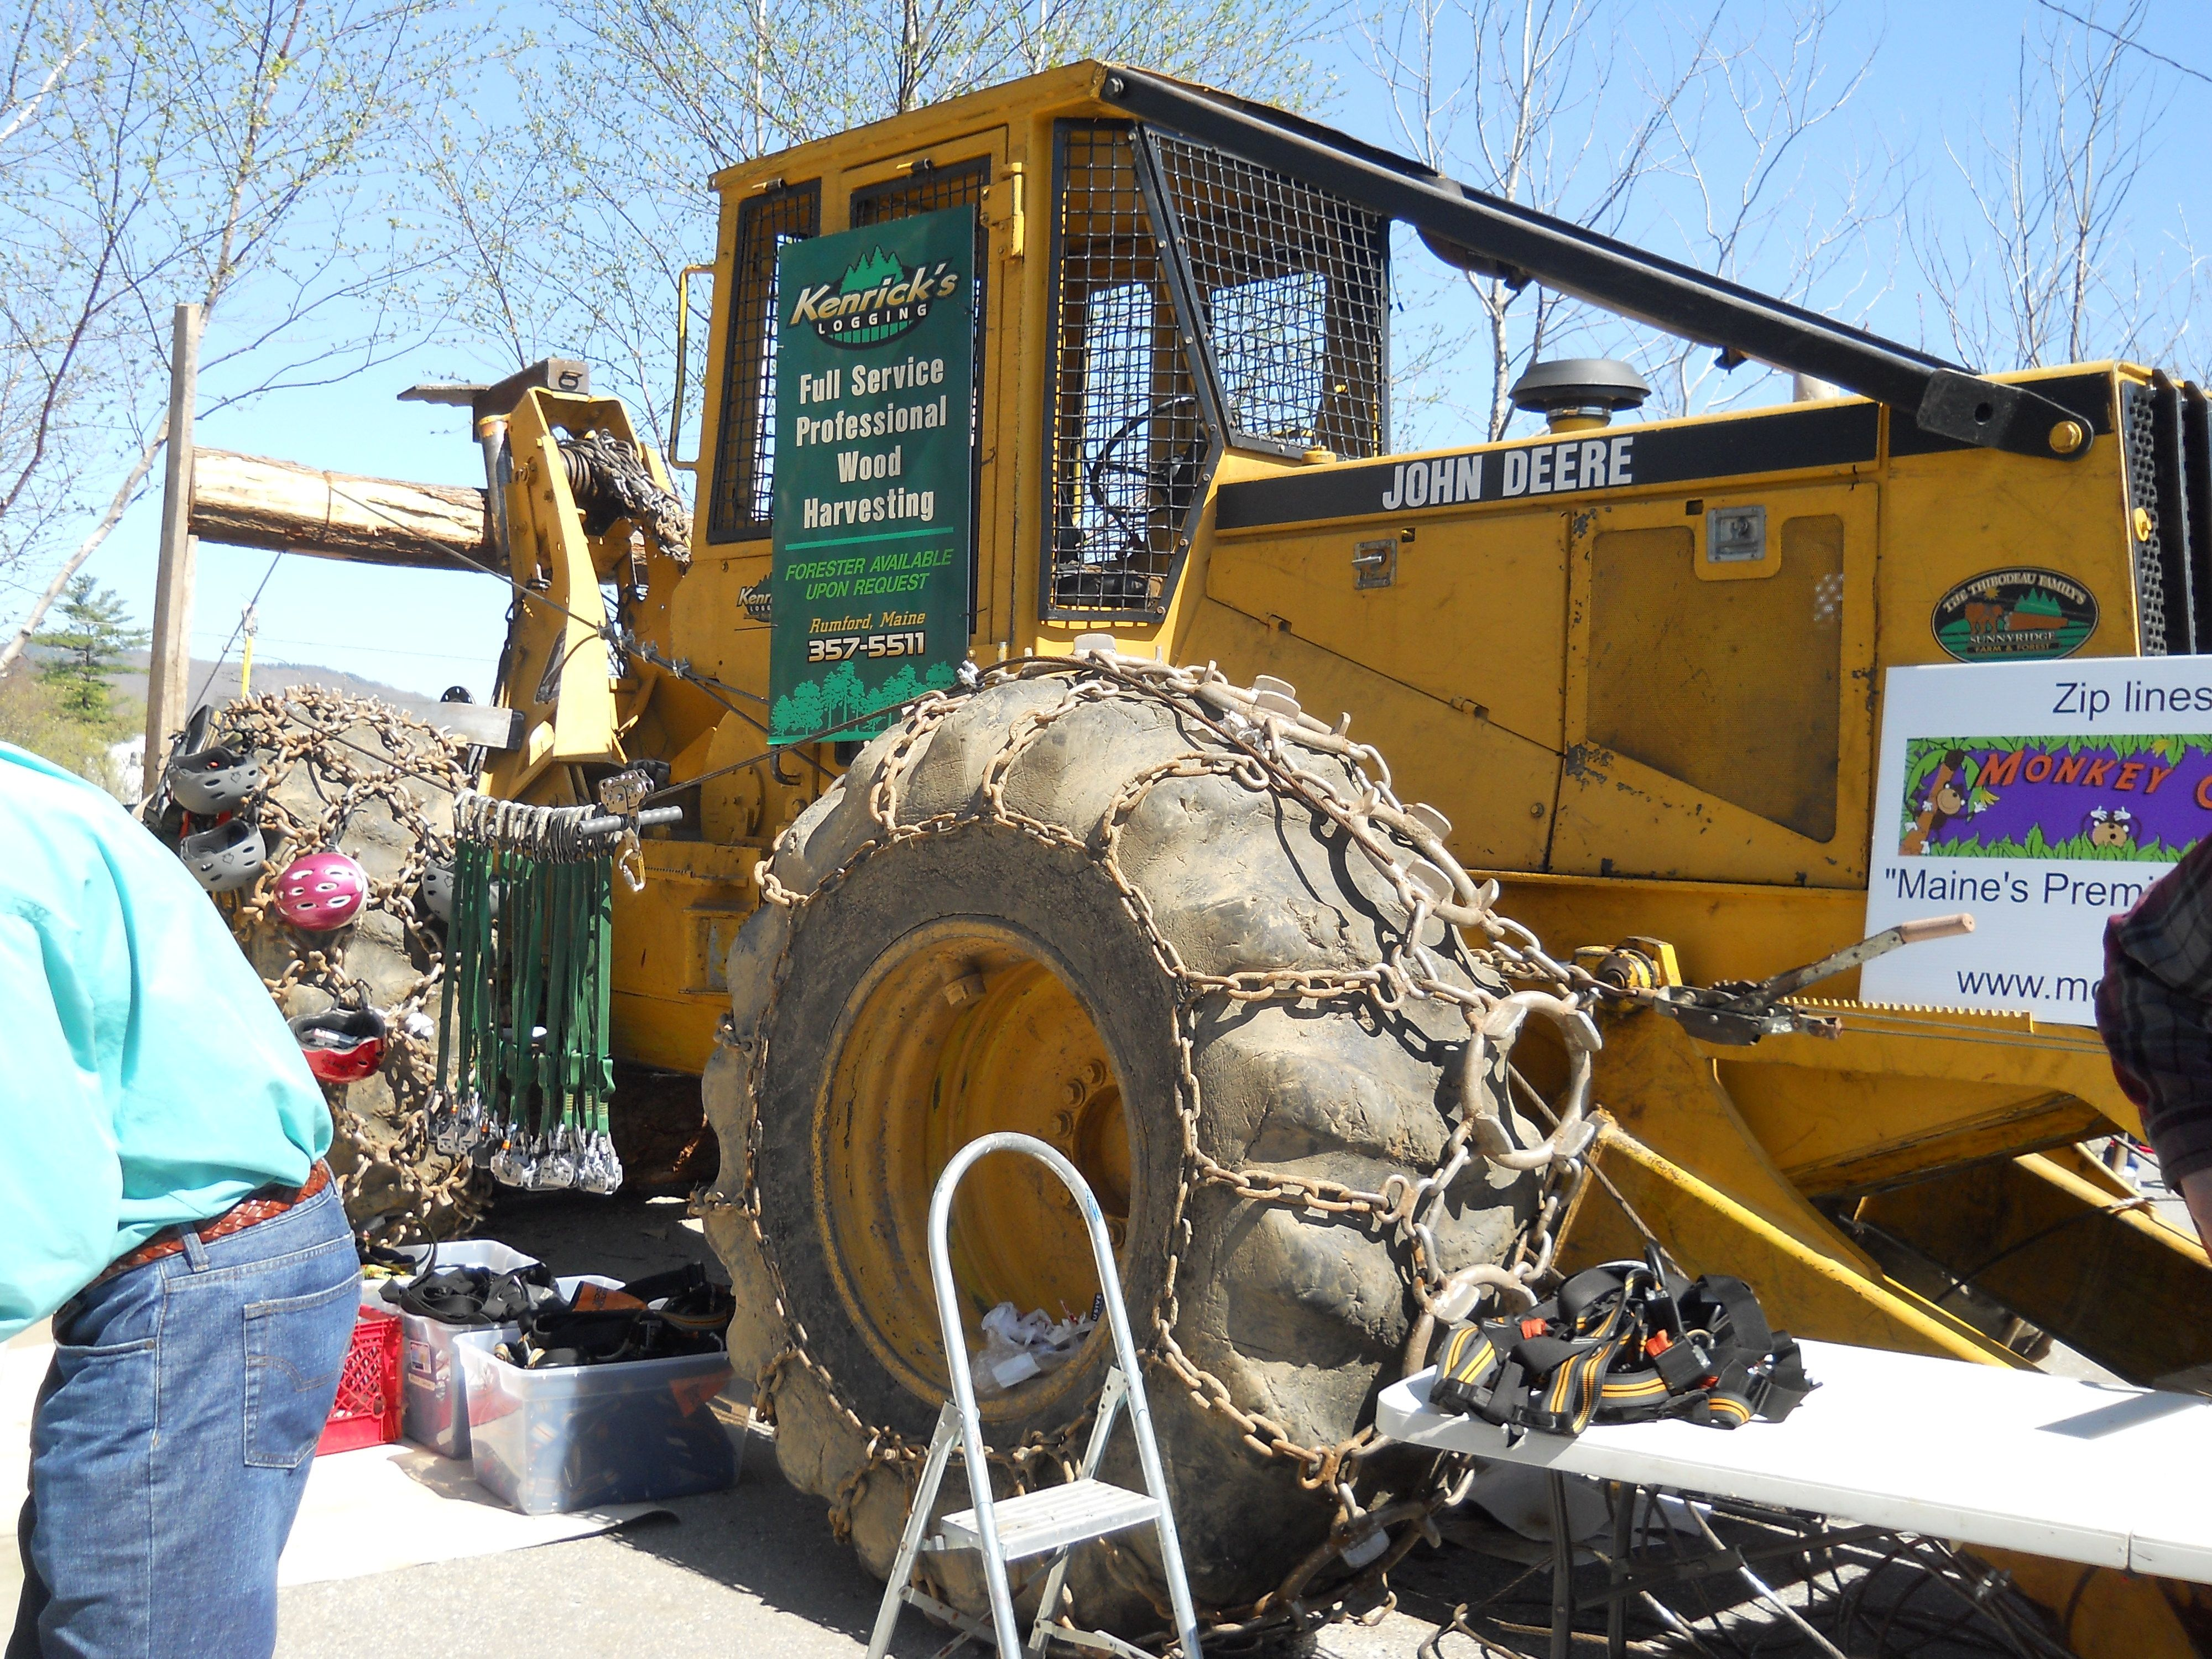 Tree farmer skidder for sale in ny - 640e Skidder With Zip Tie Cable And Equipment For The Sport Of Zip Tie Https